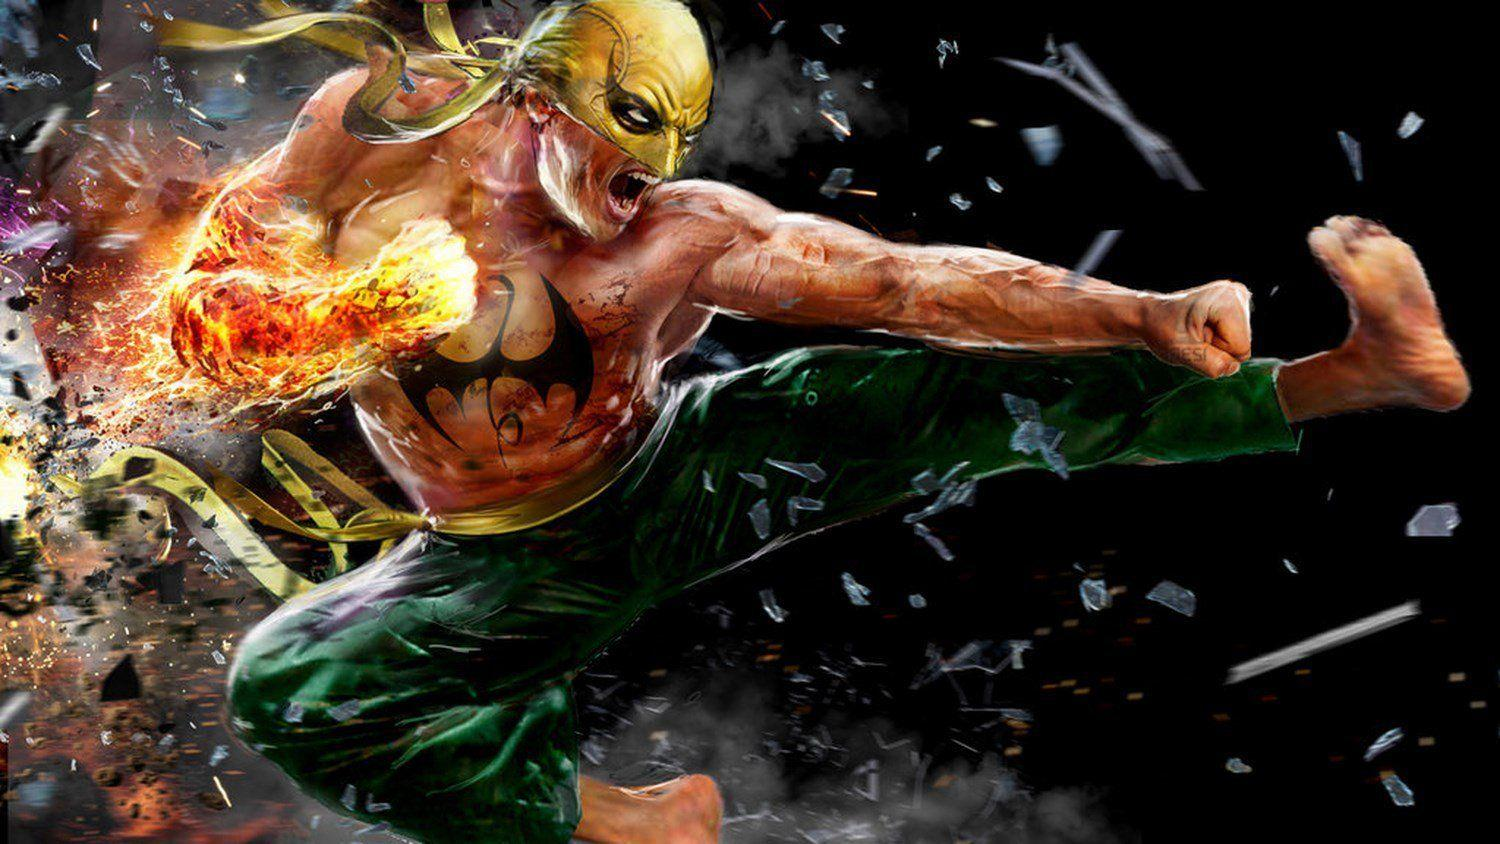 Iron Fist Netflix wallpapers HD 2016 in Movies